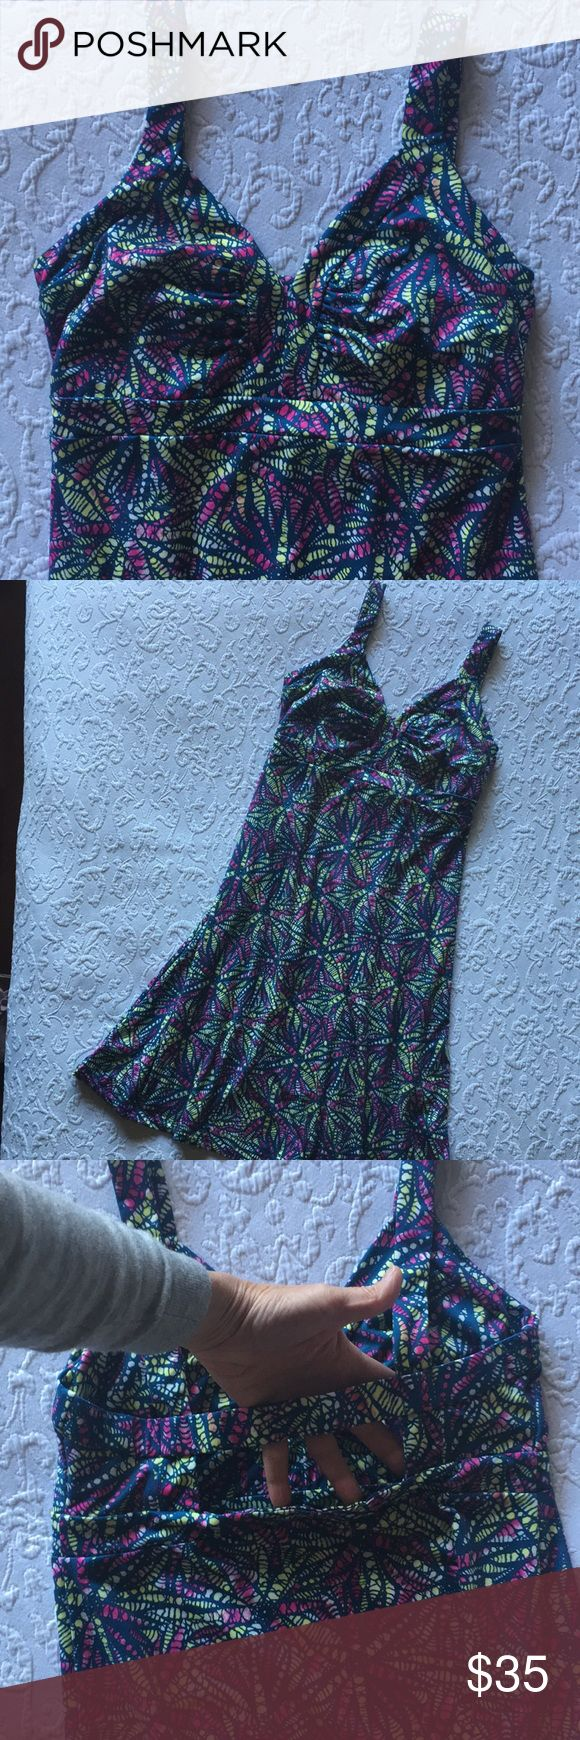 Patagonia dress Beautiful, comfortable and very soft Patagonia dress in like-new condition. Back has cut out above the waist. Fabric along back bra strap is heavily elasticized. Fabric is downy-soft and has a good amount of comfortable stretch. Patagonia Dresses